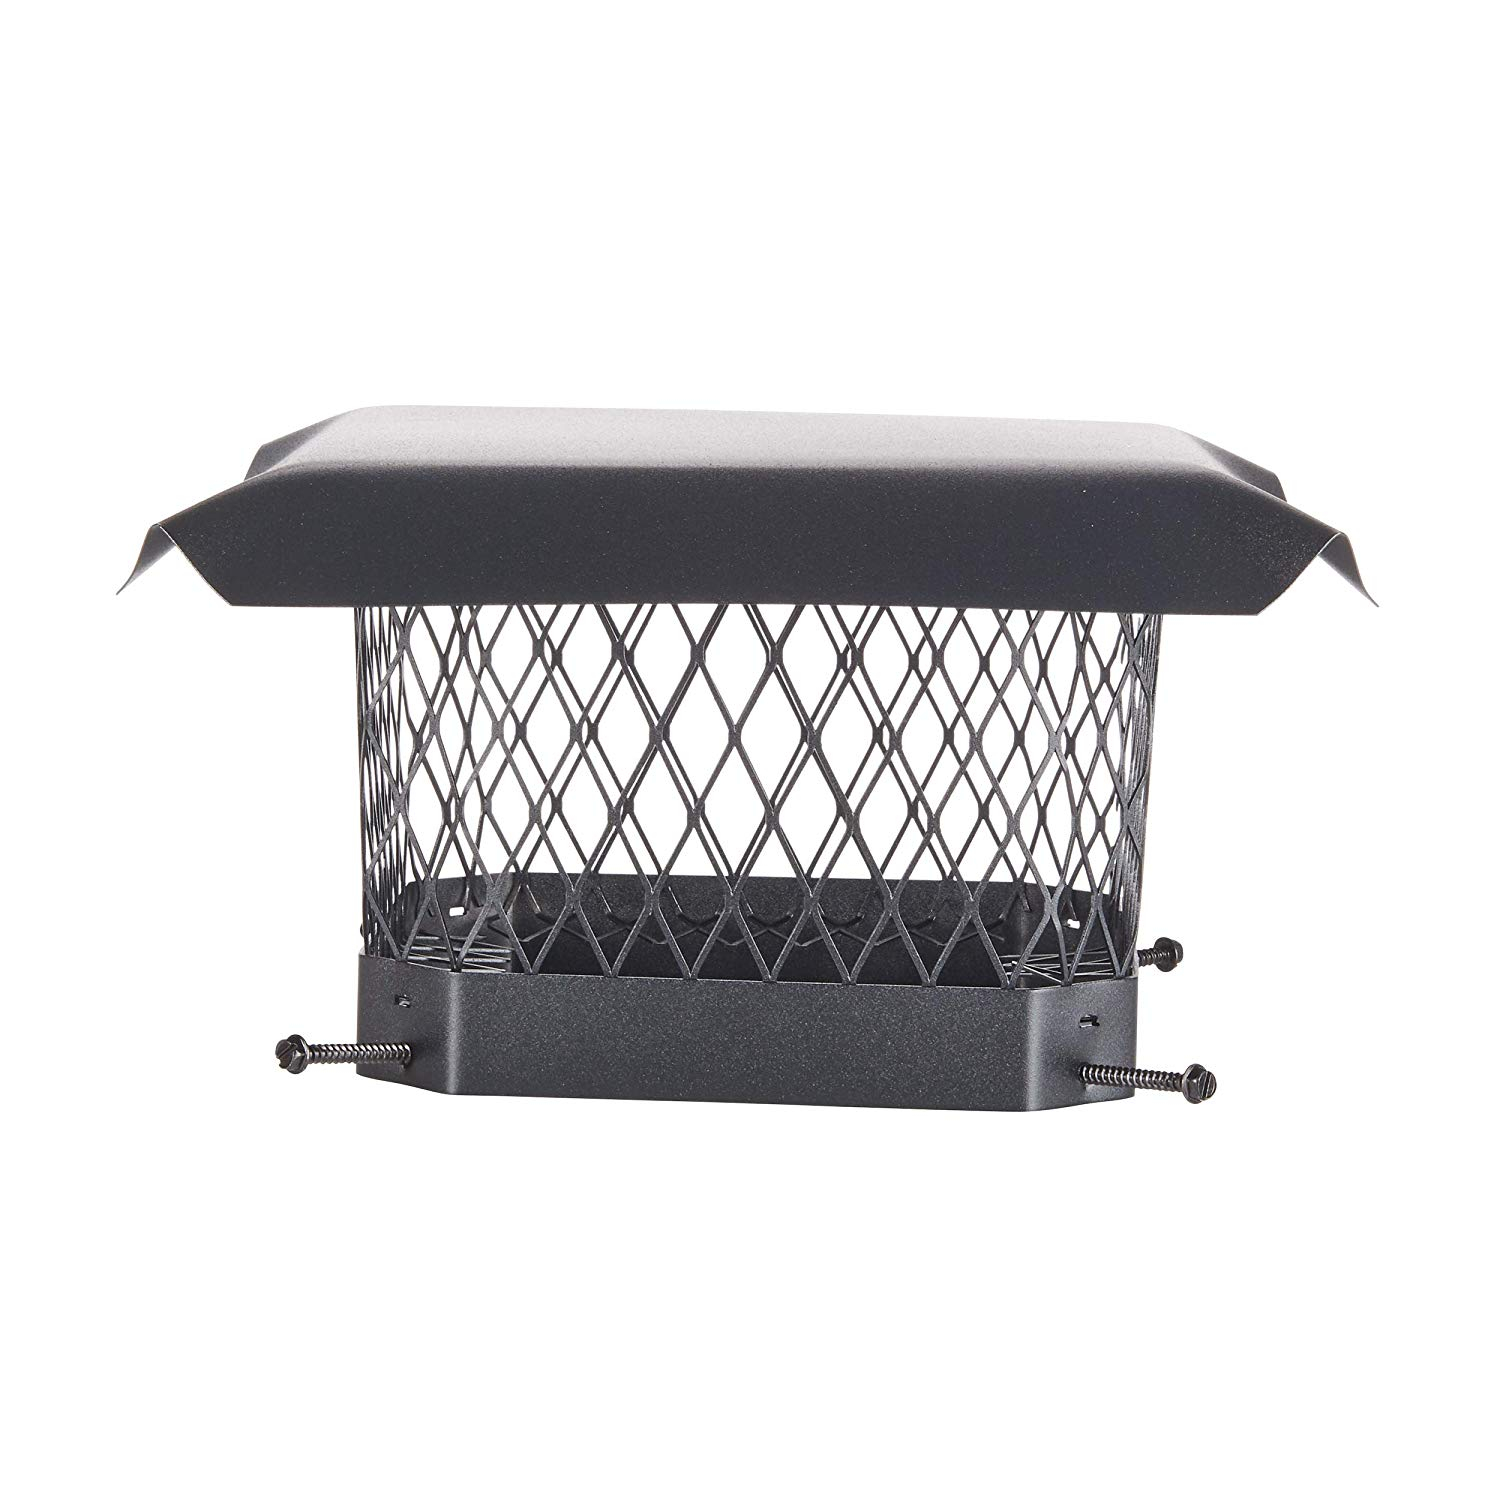 Review of HY-C SC99 Shelter Bolt On Single Flue Chimney Cover, Mesh Size 3/4